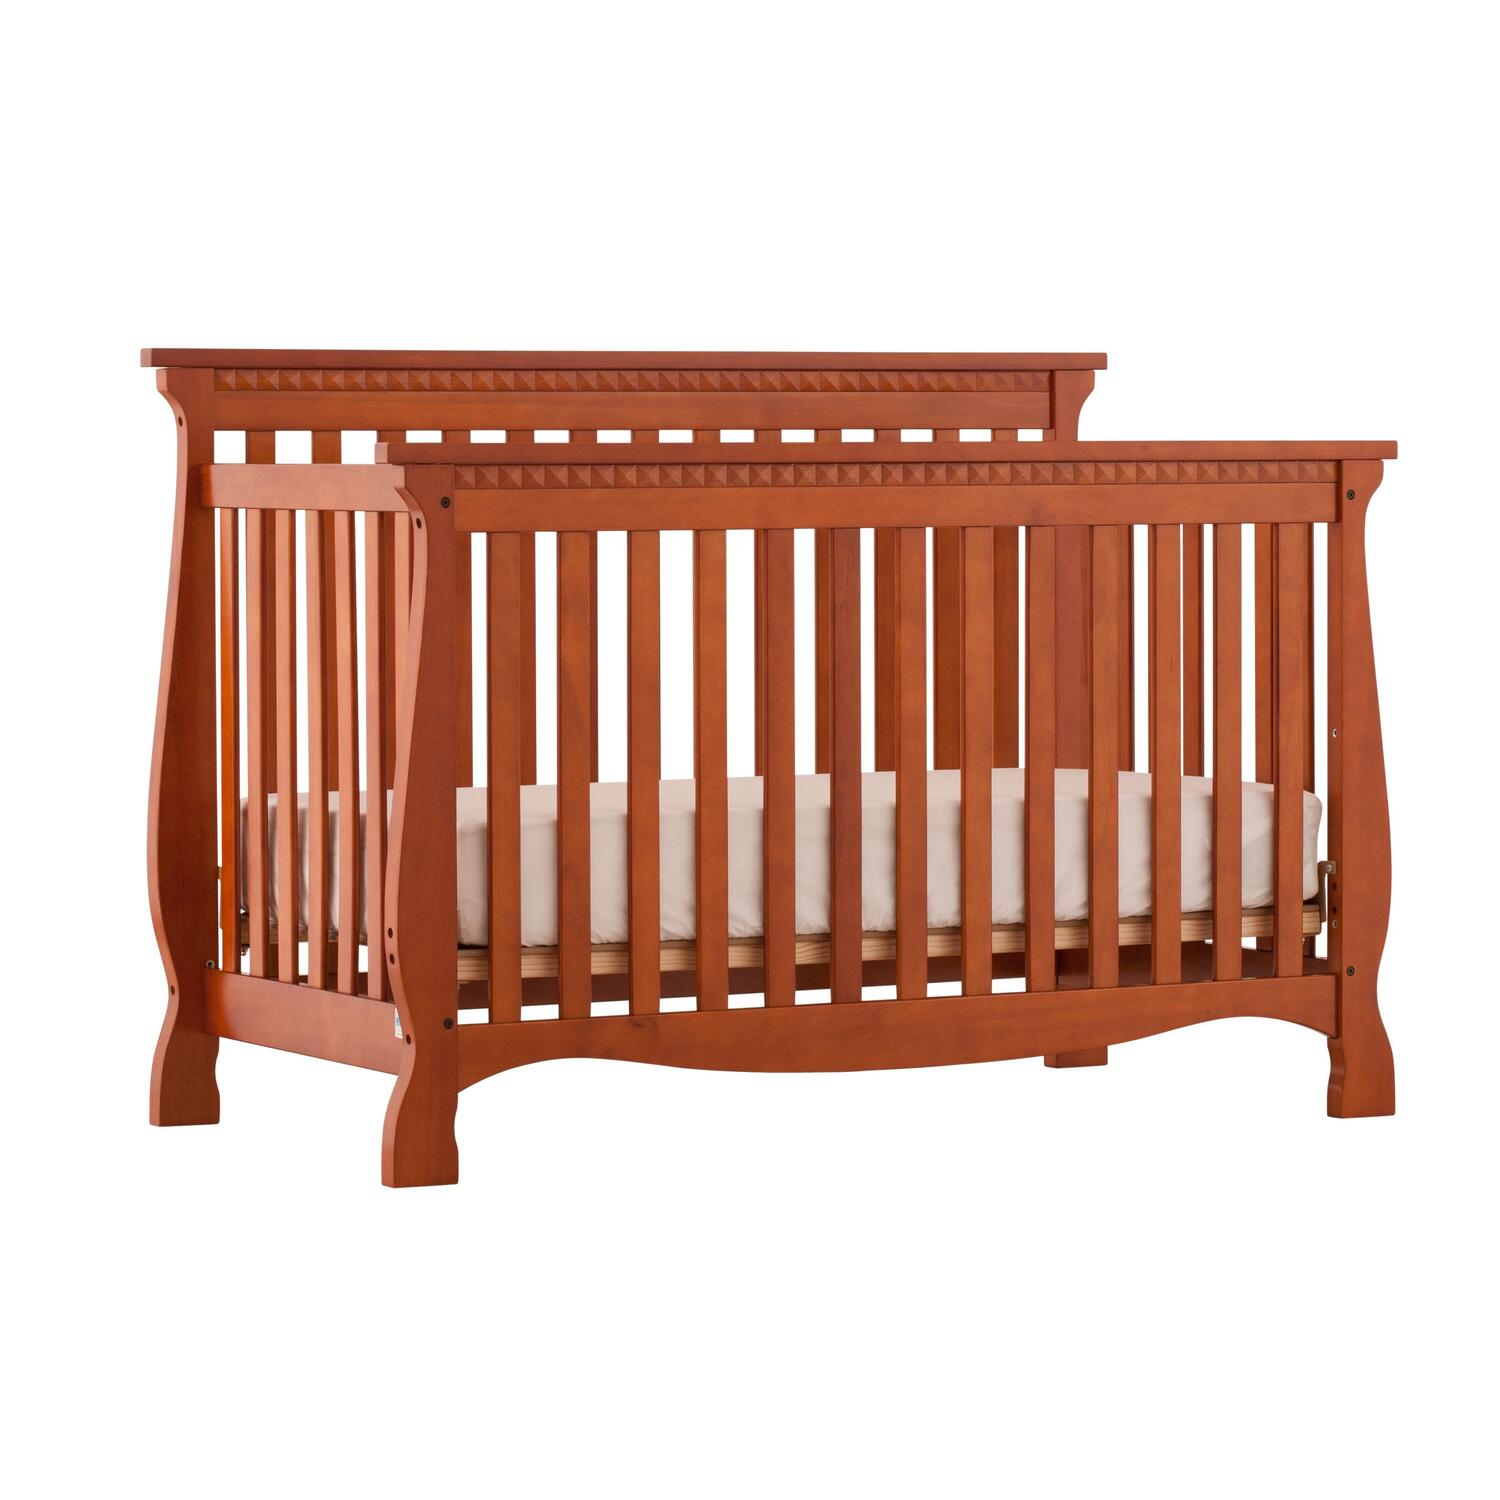 Storkcraft Stork Craft Venetian 4 in 1 Fixed Side Convertible Crib by OJ Commerce $256.81 - $288.99